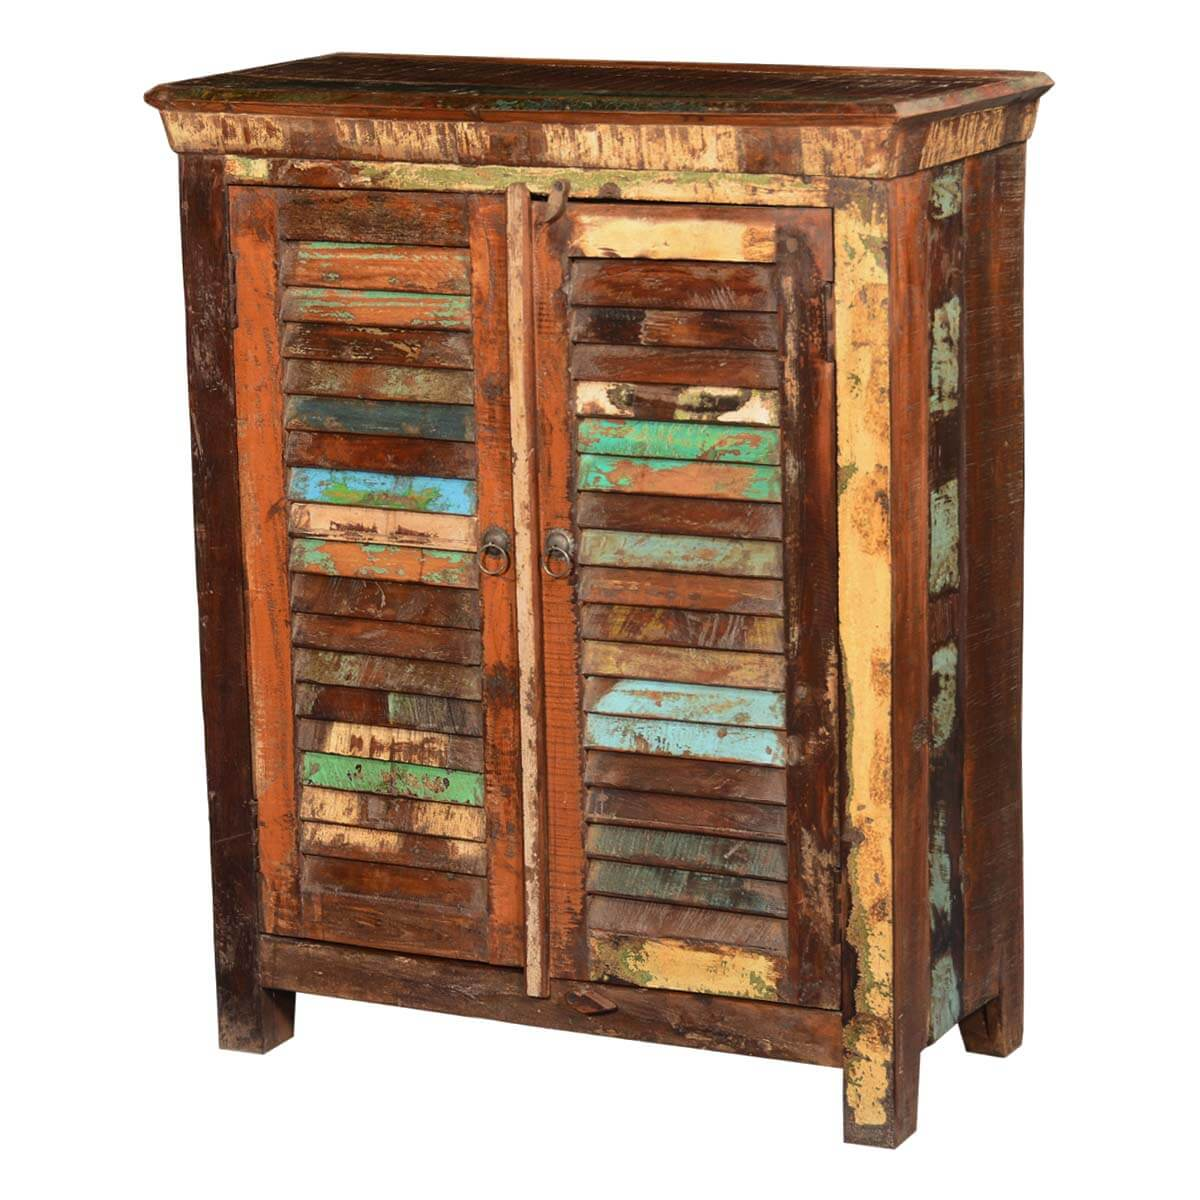 Reclaimed Wood Kitchen Cabinets: Tennessee Reclaimed Wood Shutter Doors Rustic Storage Cabinet